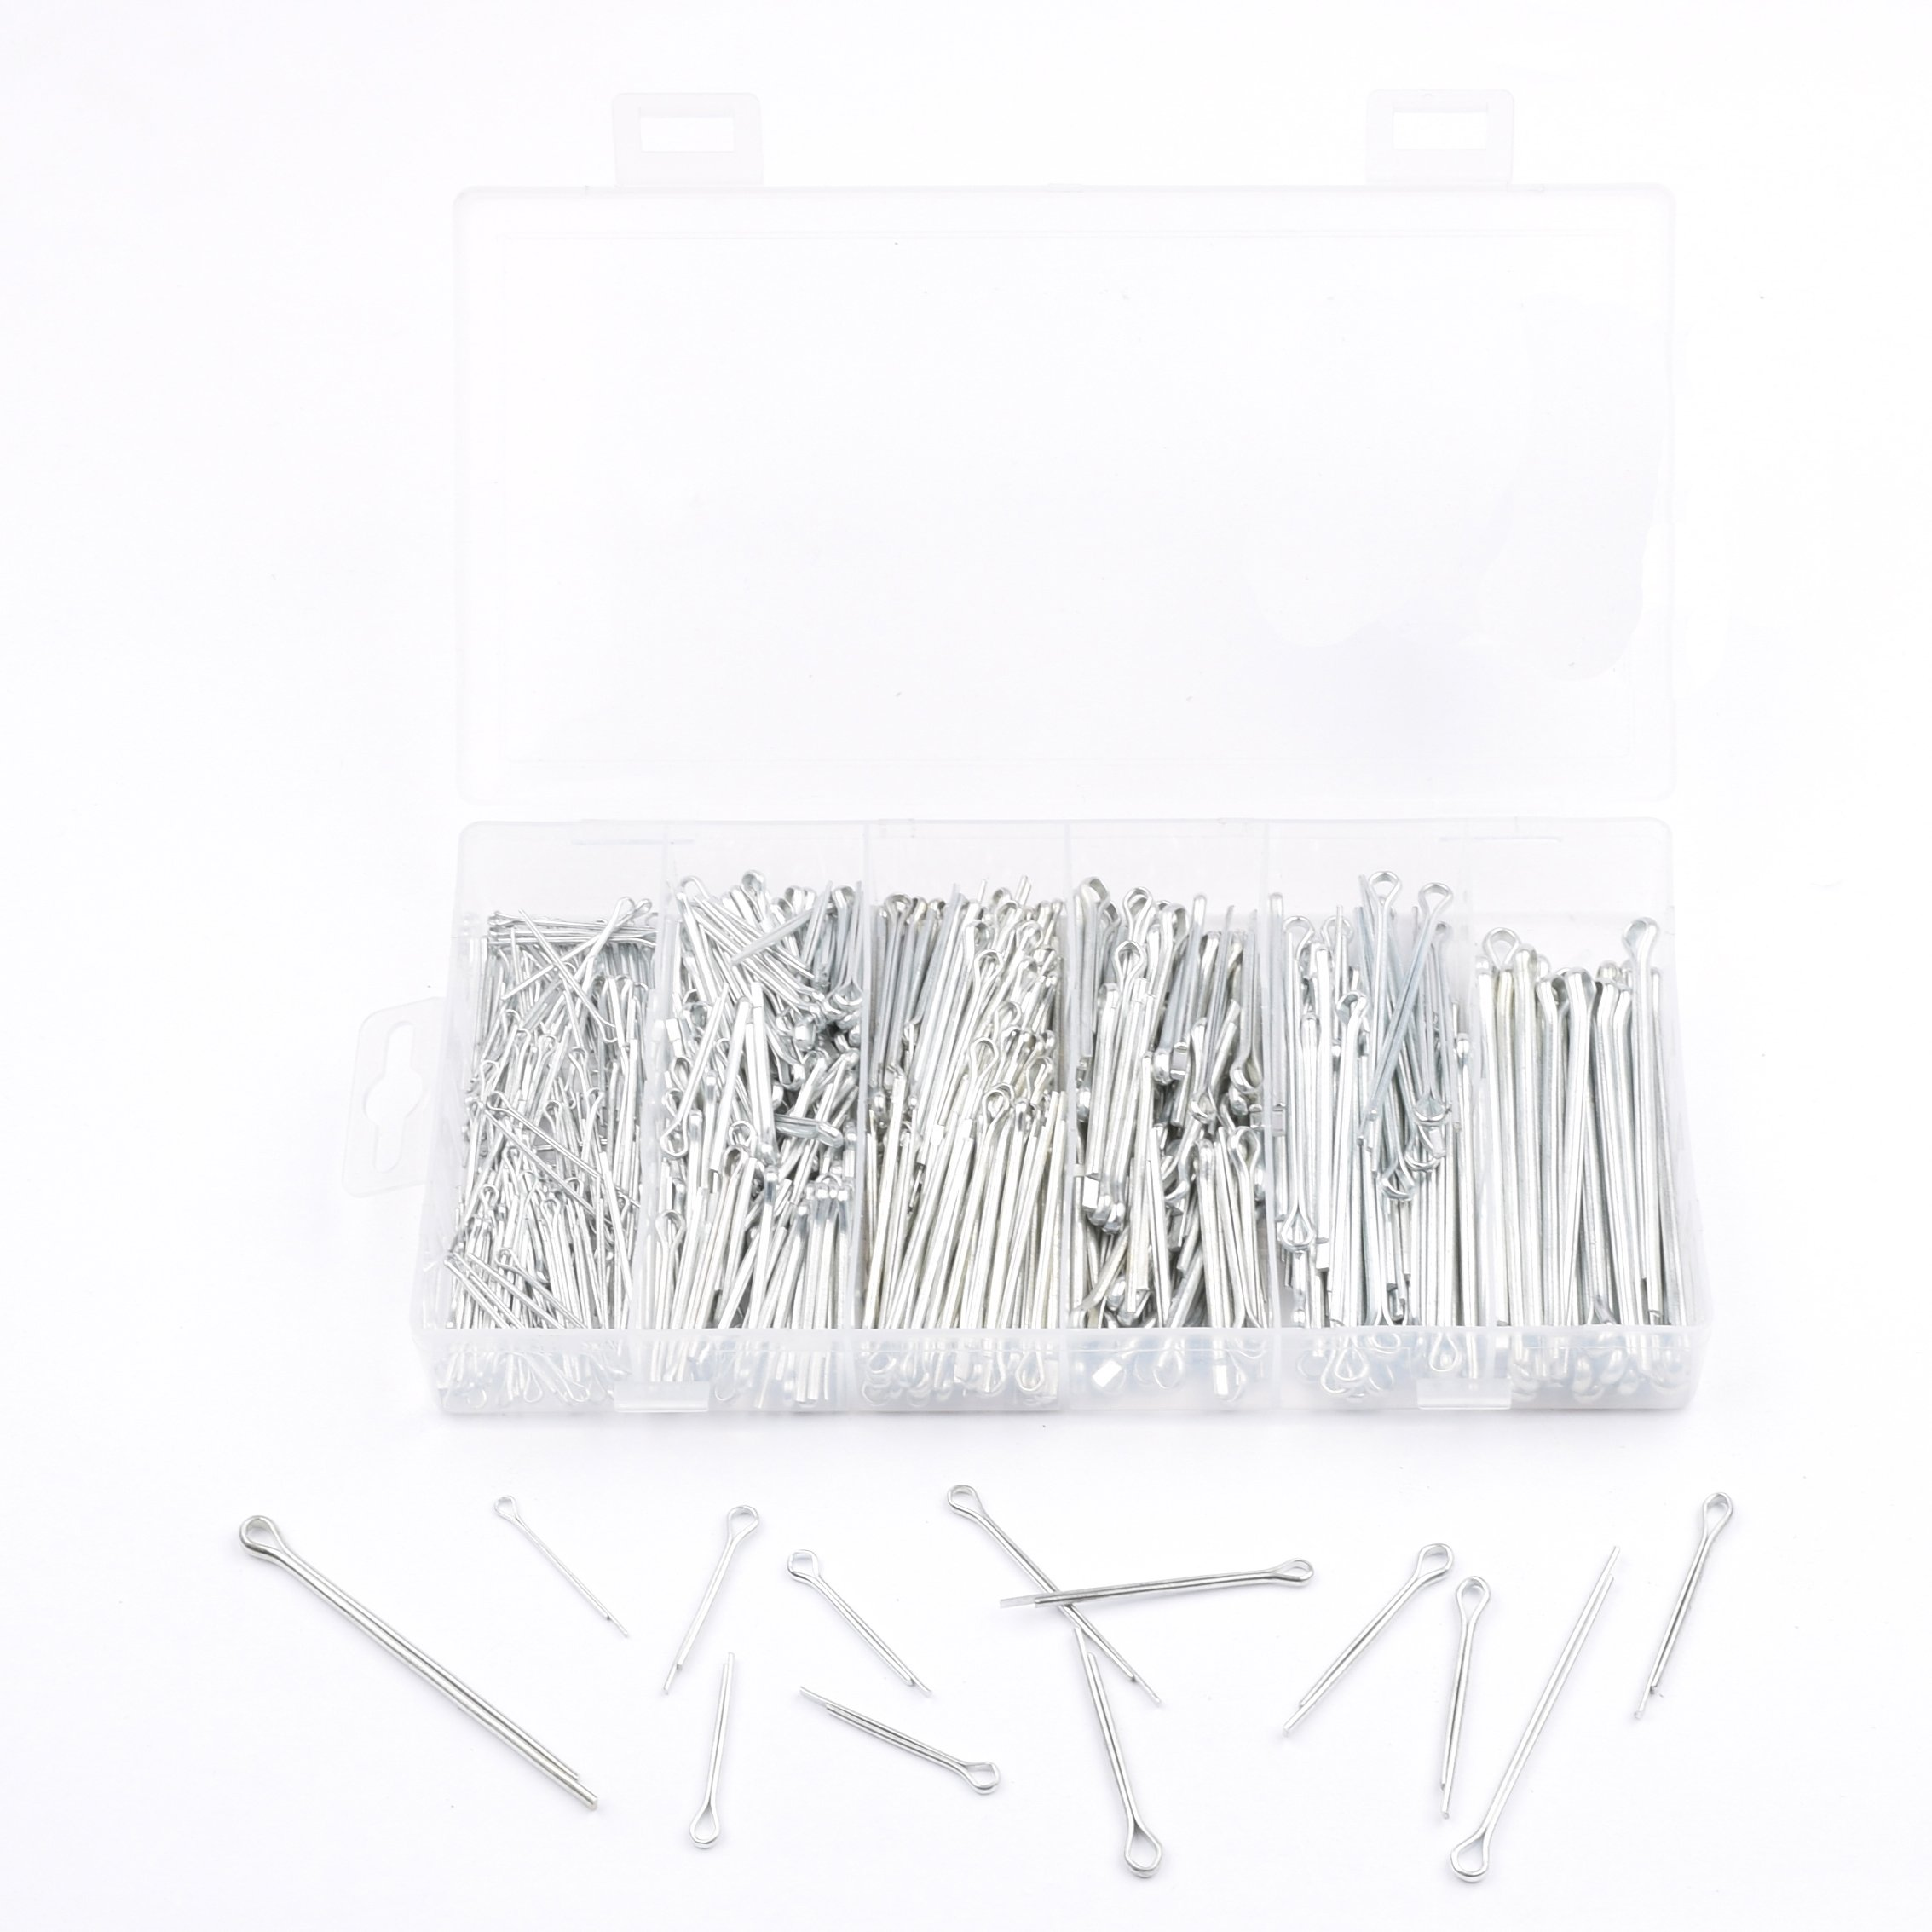 Seah Hardware 555 PC Heavy Duty Cotter Pins